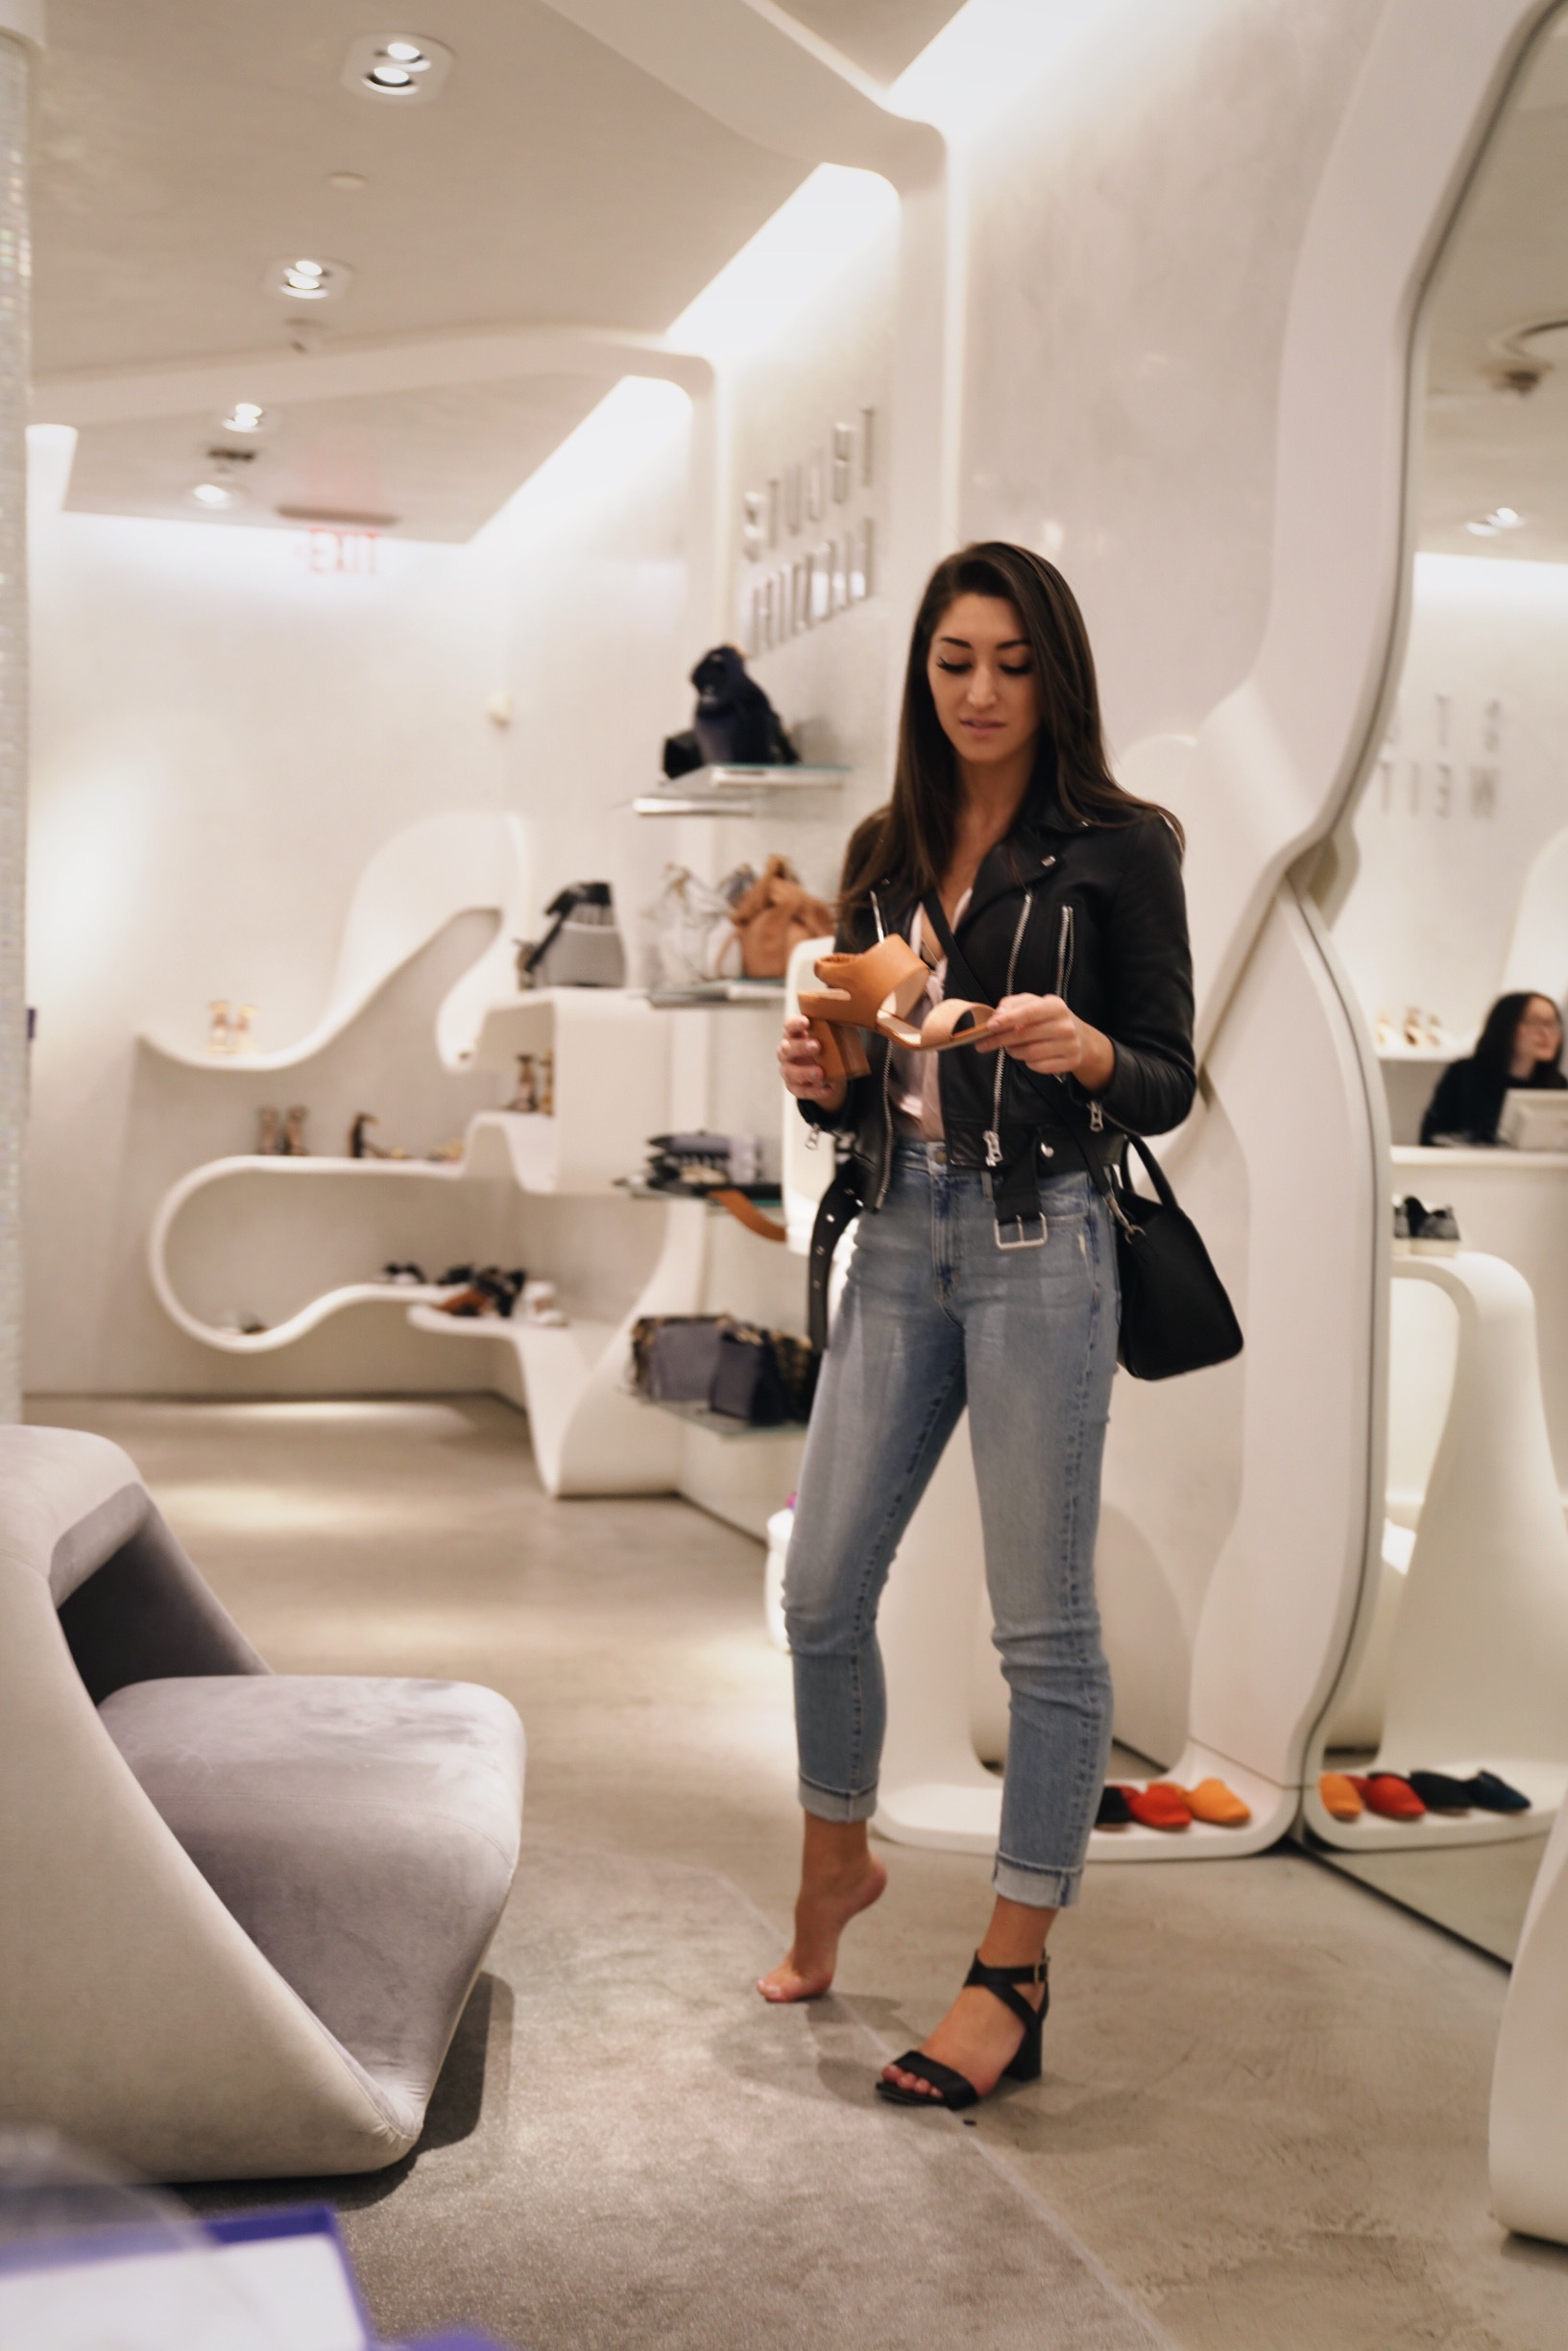 Stuart Weitzman is more than just gorgeous shoes! As much as Kira loved the mid-height heels, it was a handbag that captured her heart during this shopping trip.